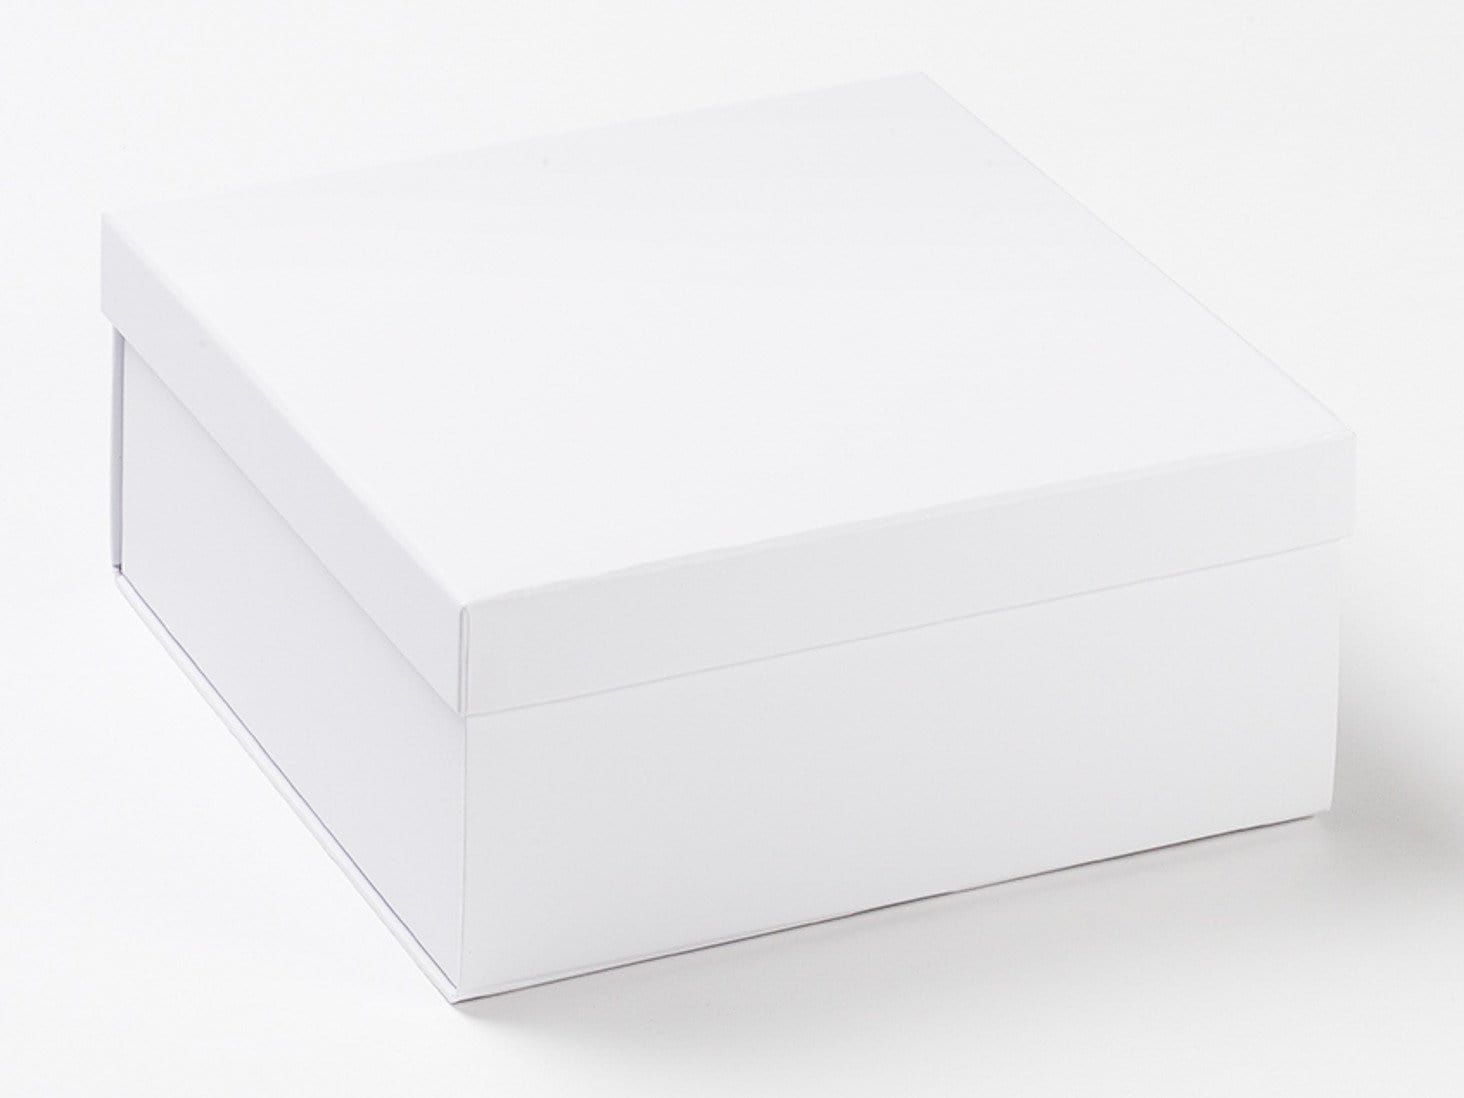 White Medium Lift Off Lid Luxury Folding Gift Boxes with Lid Assembled